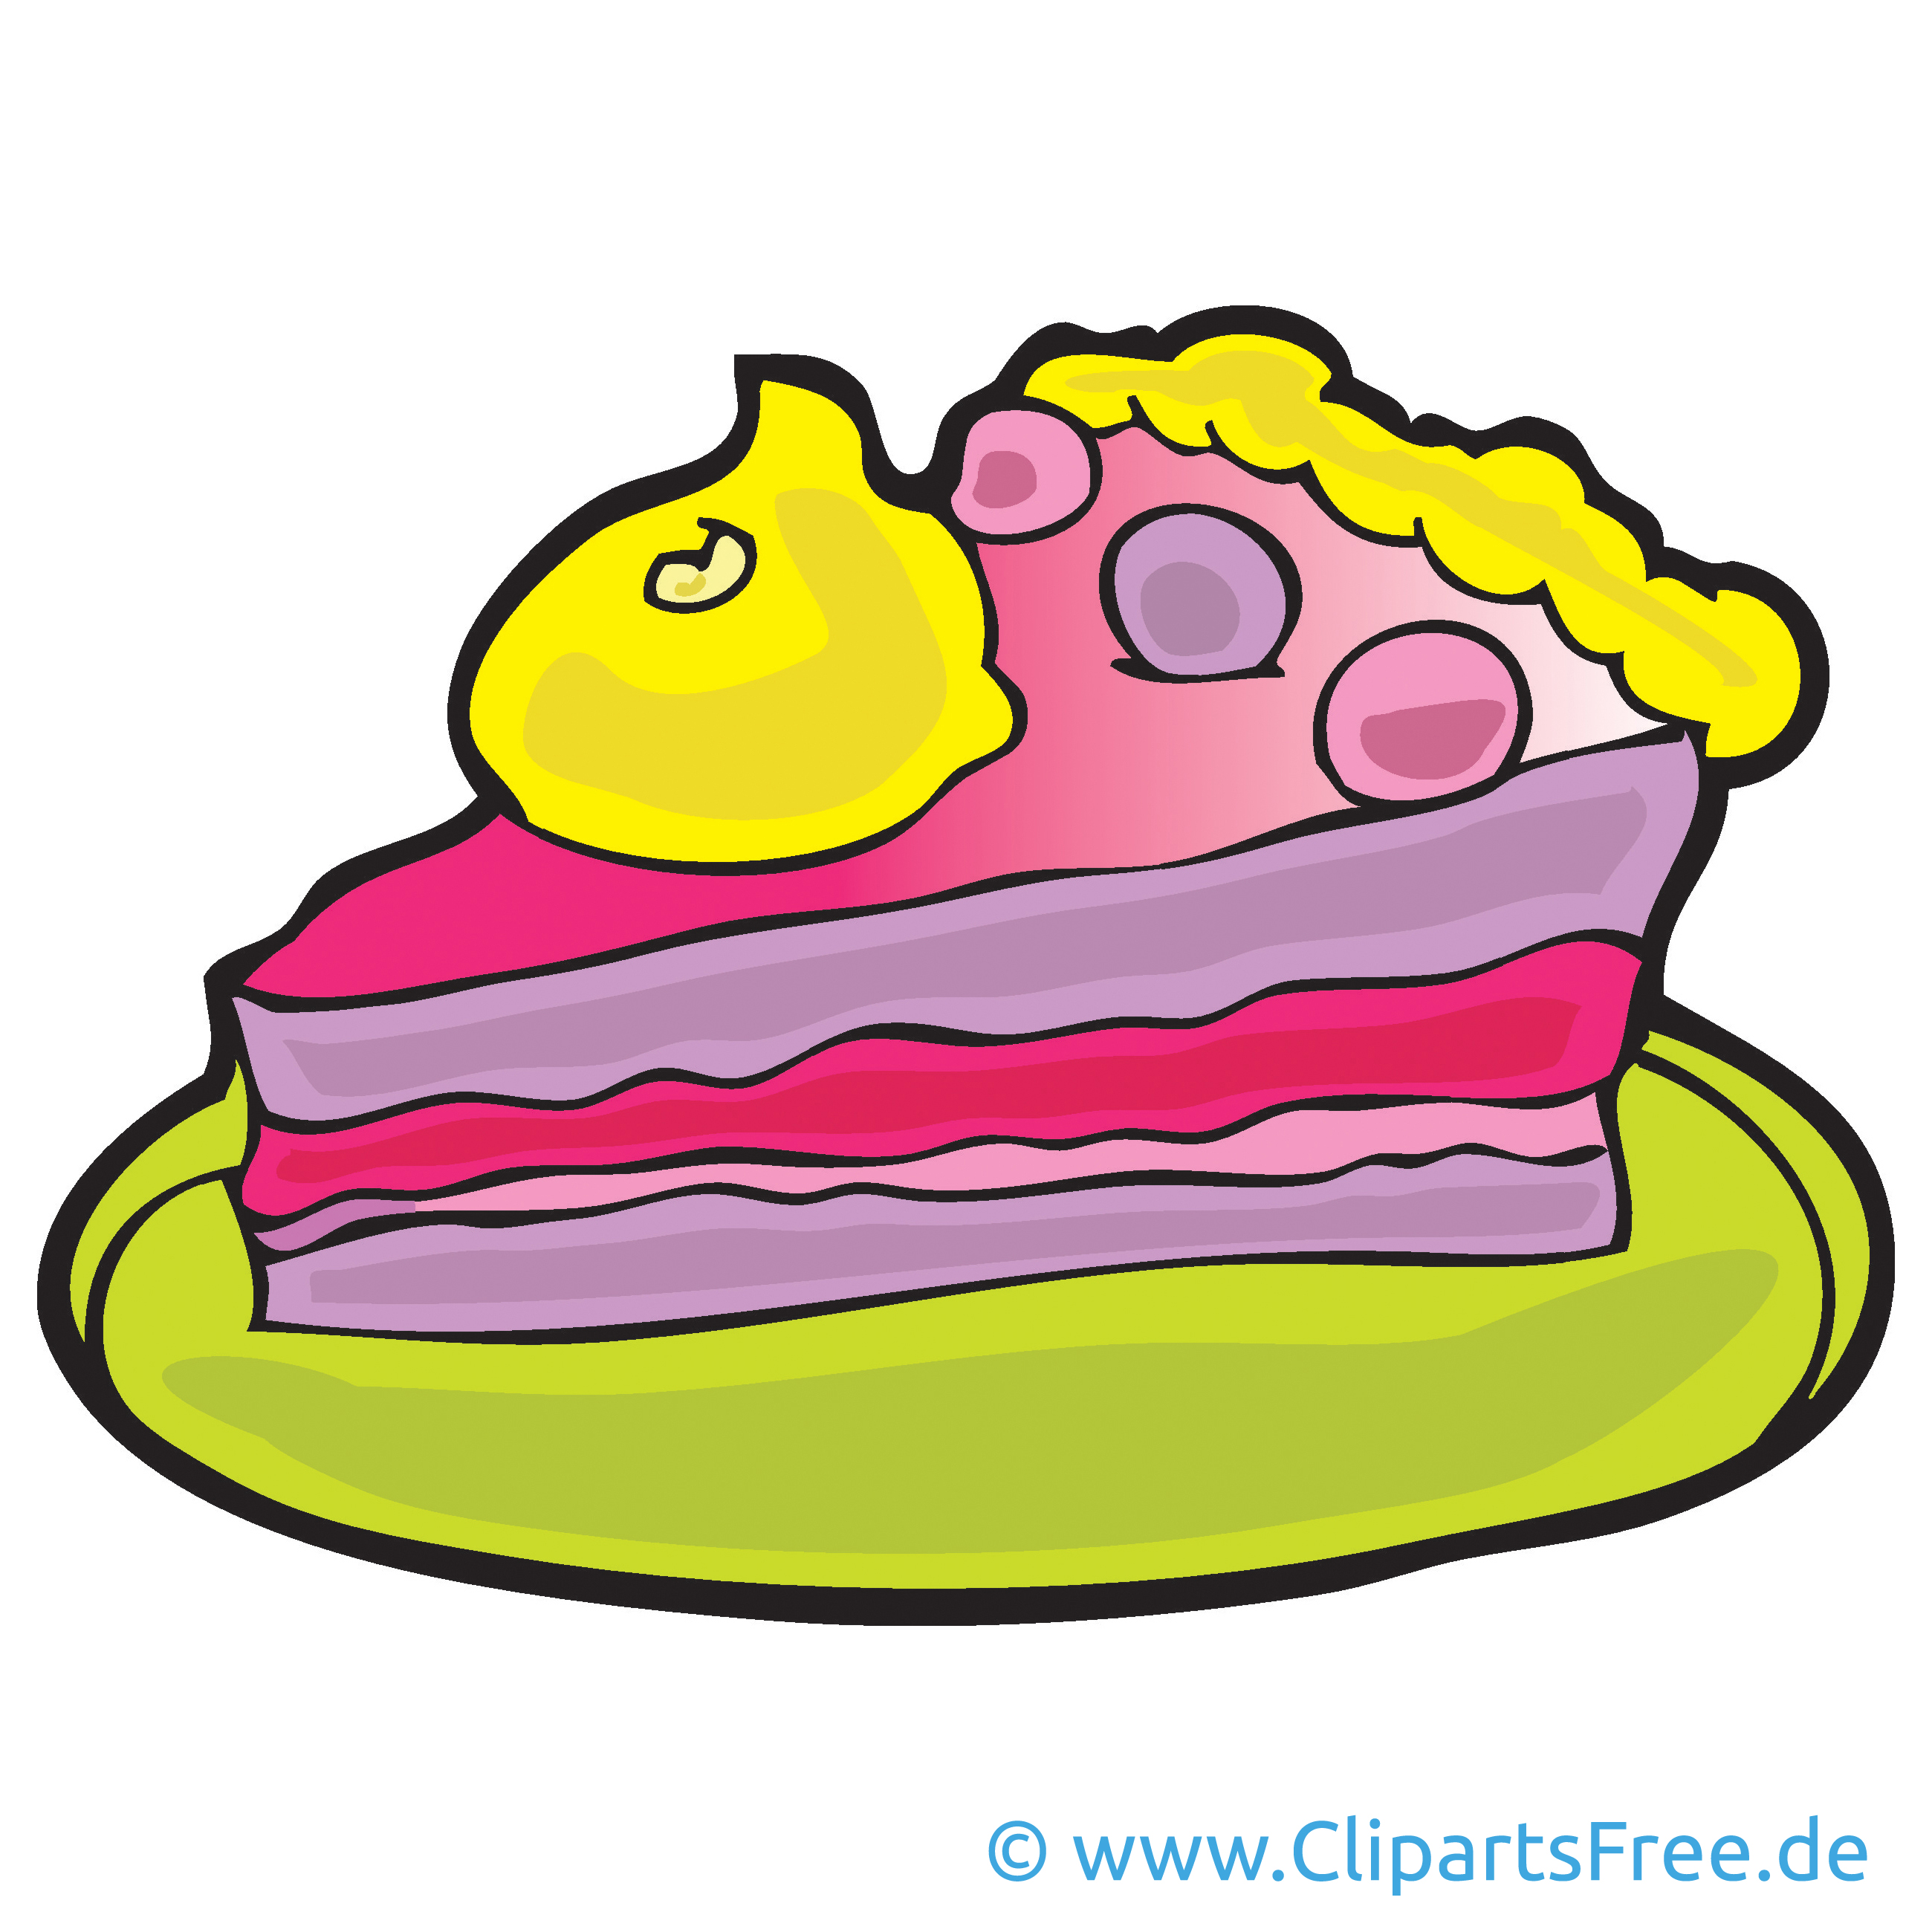 Torte Bild Cartoon Clipart Grafik Illustration